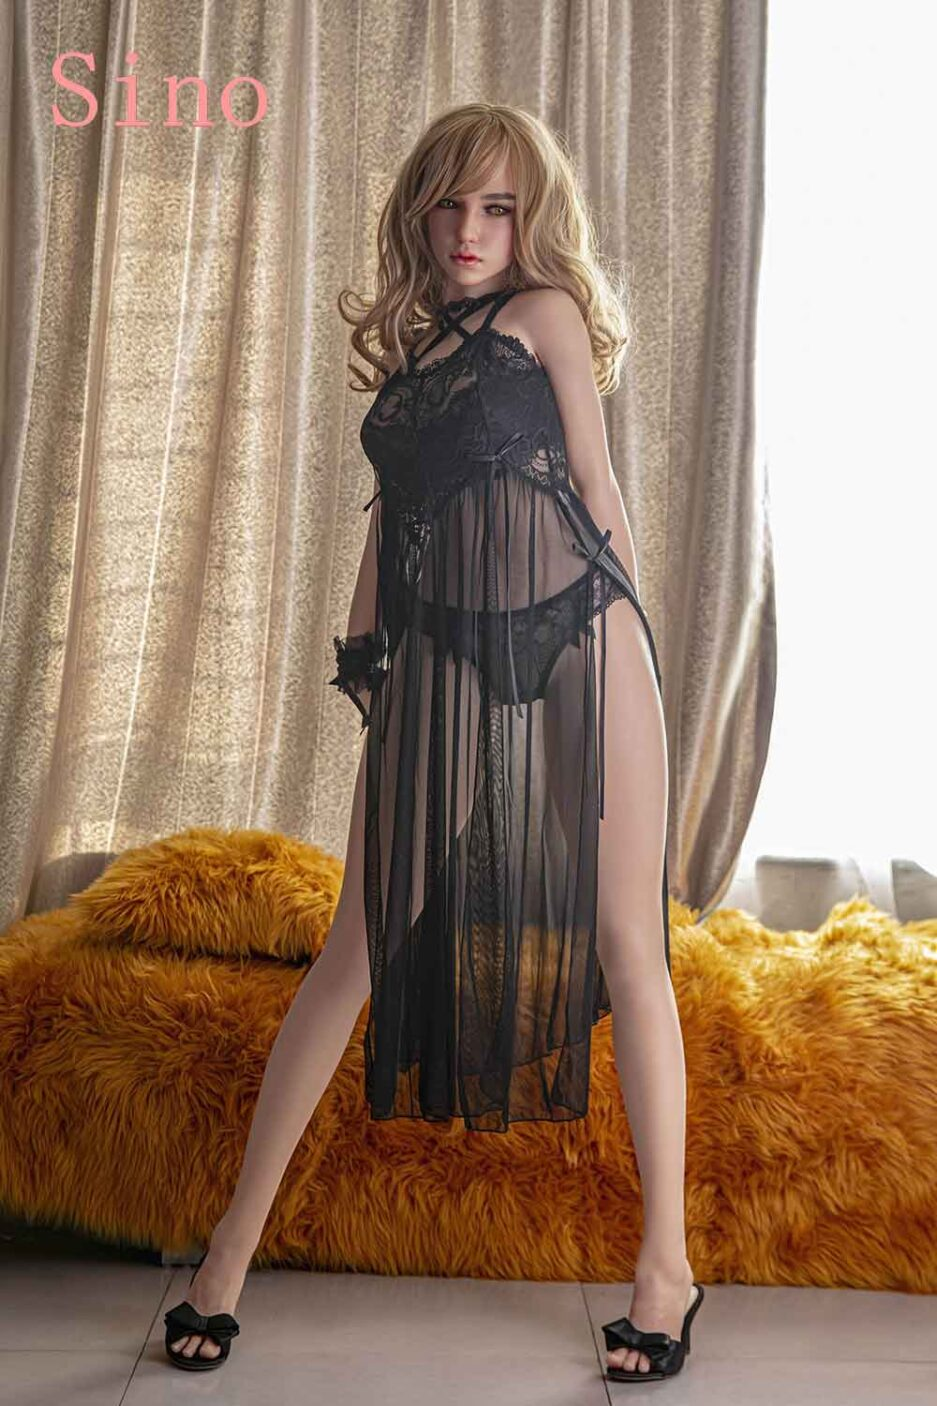 Silicone sex doll in black clothes